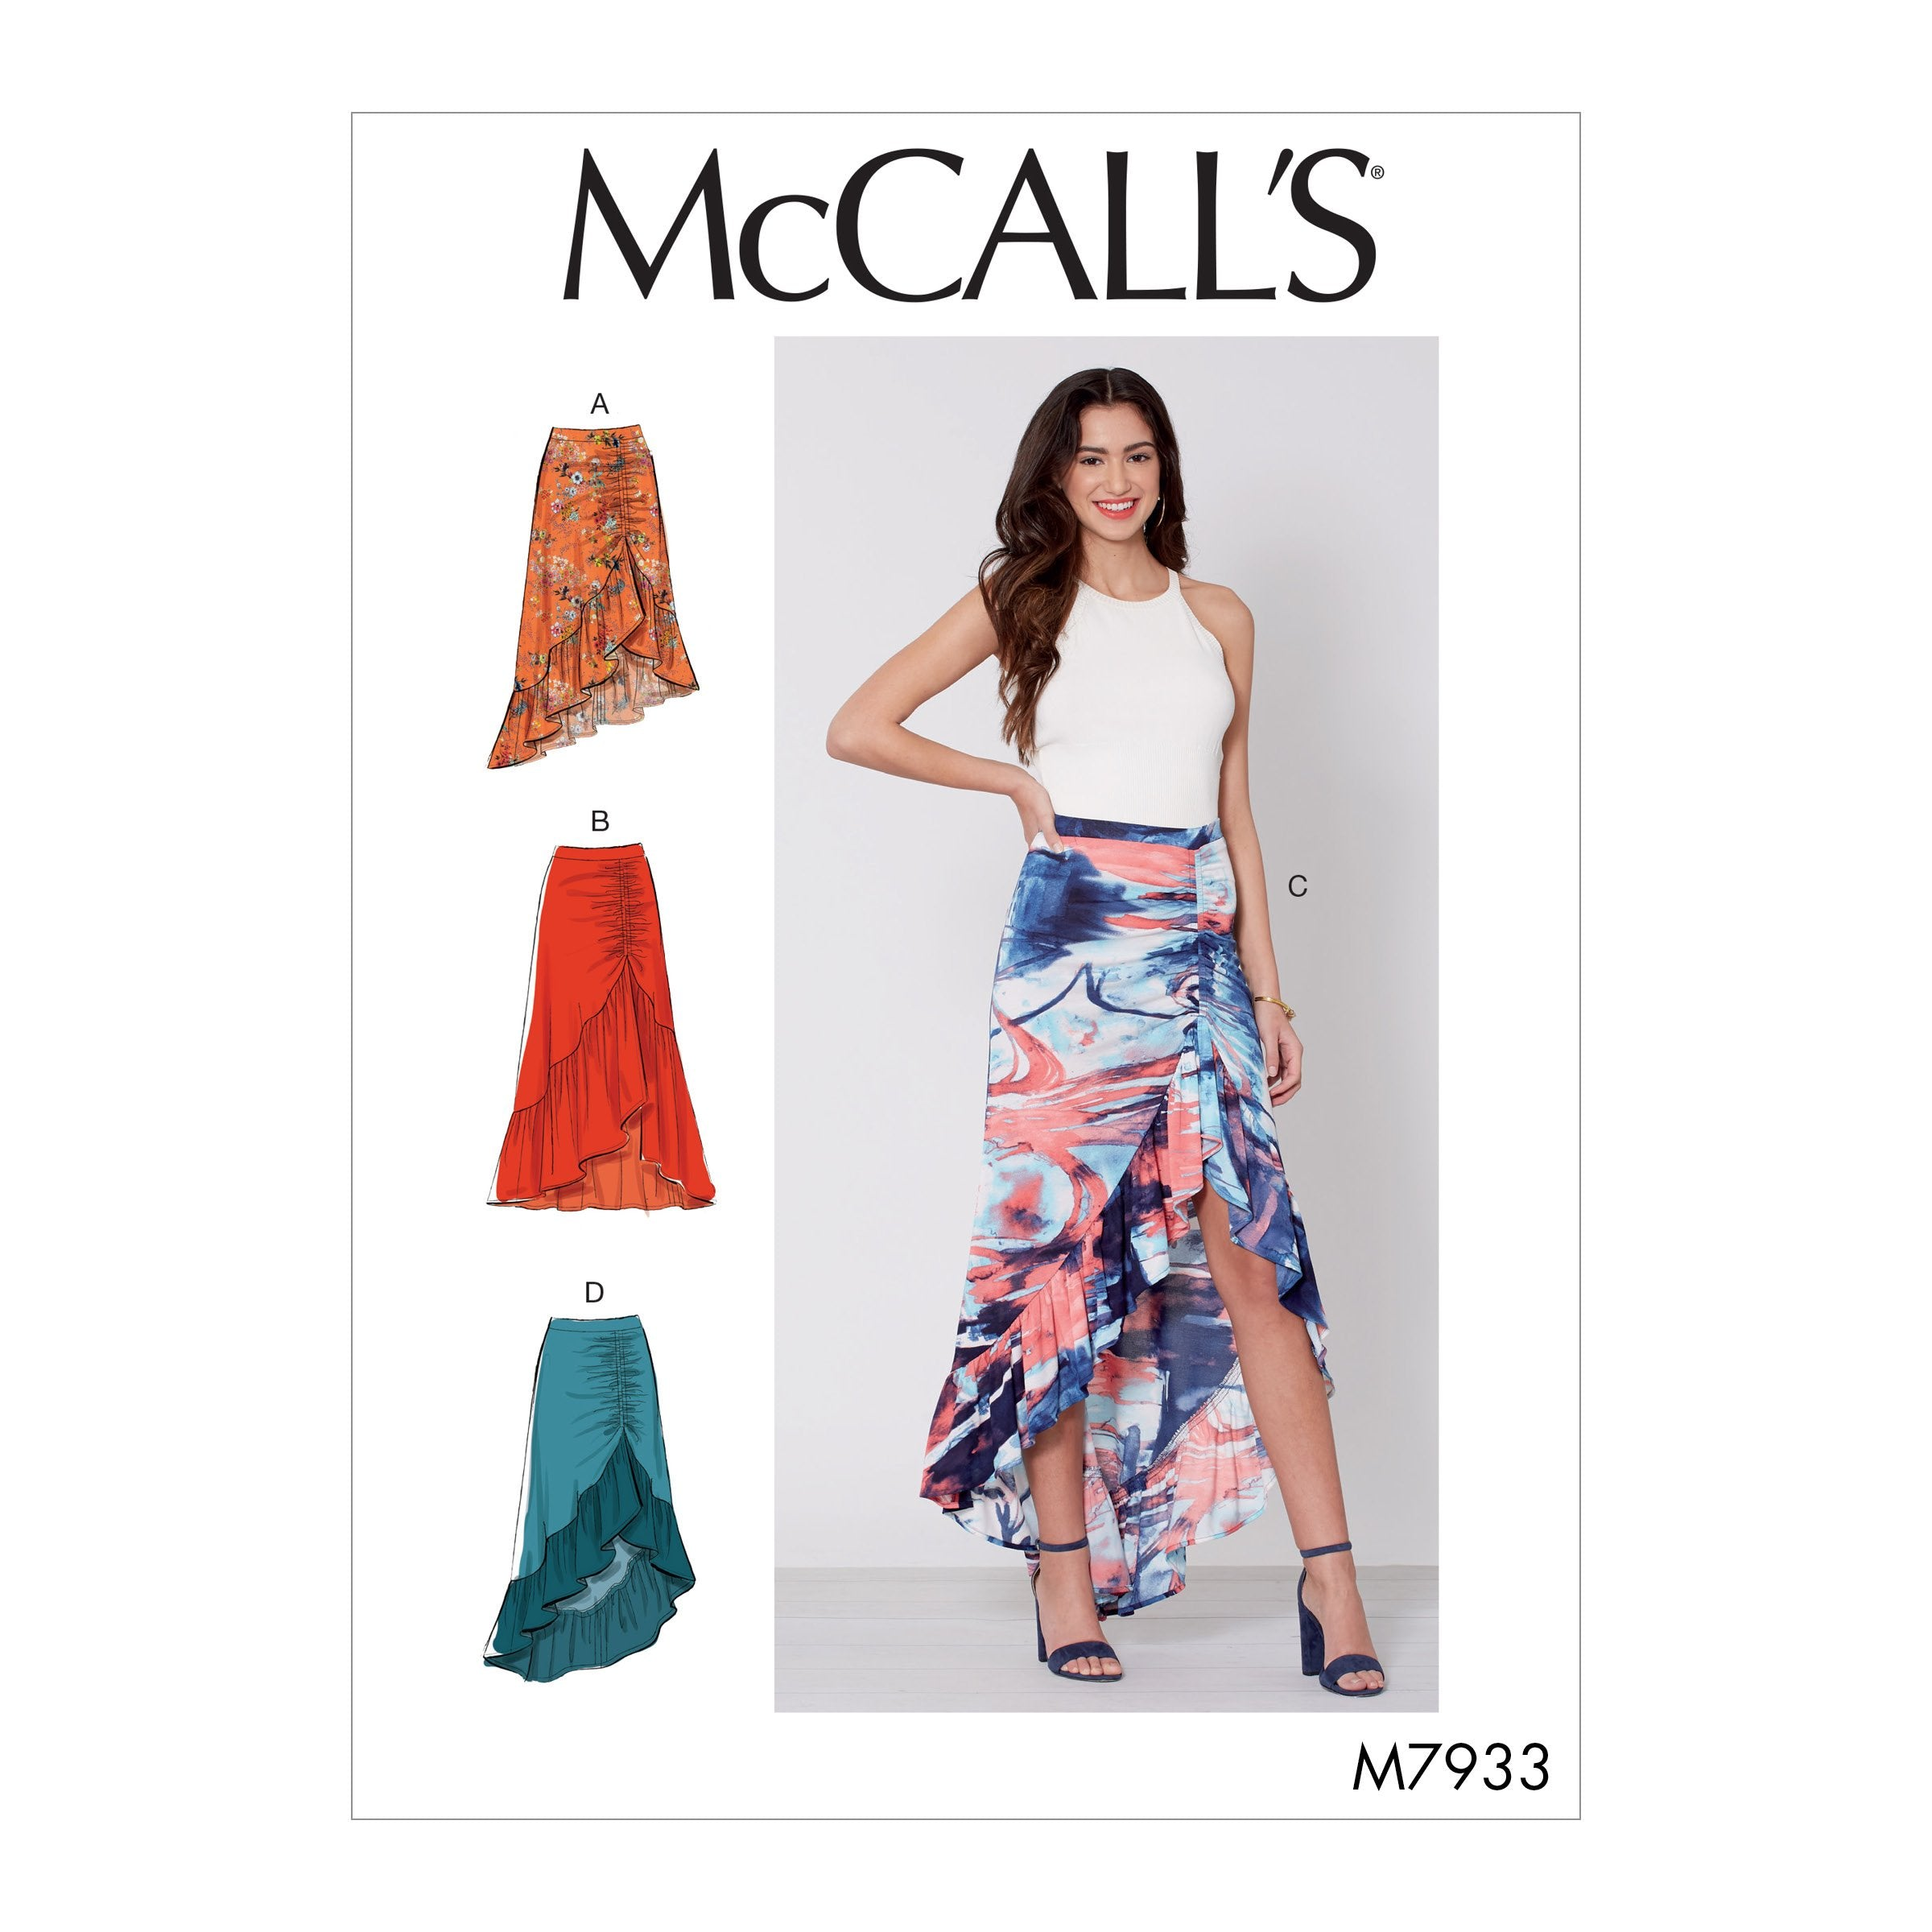 McCall's 7933 Misses' Skirts